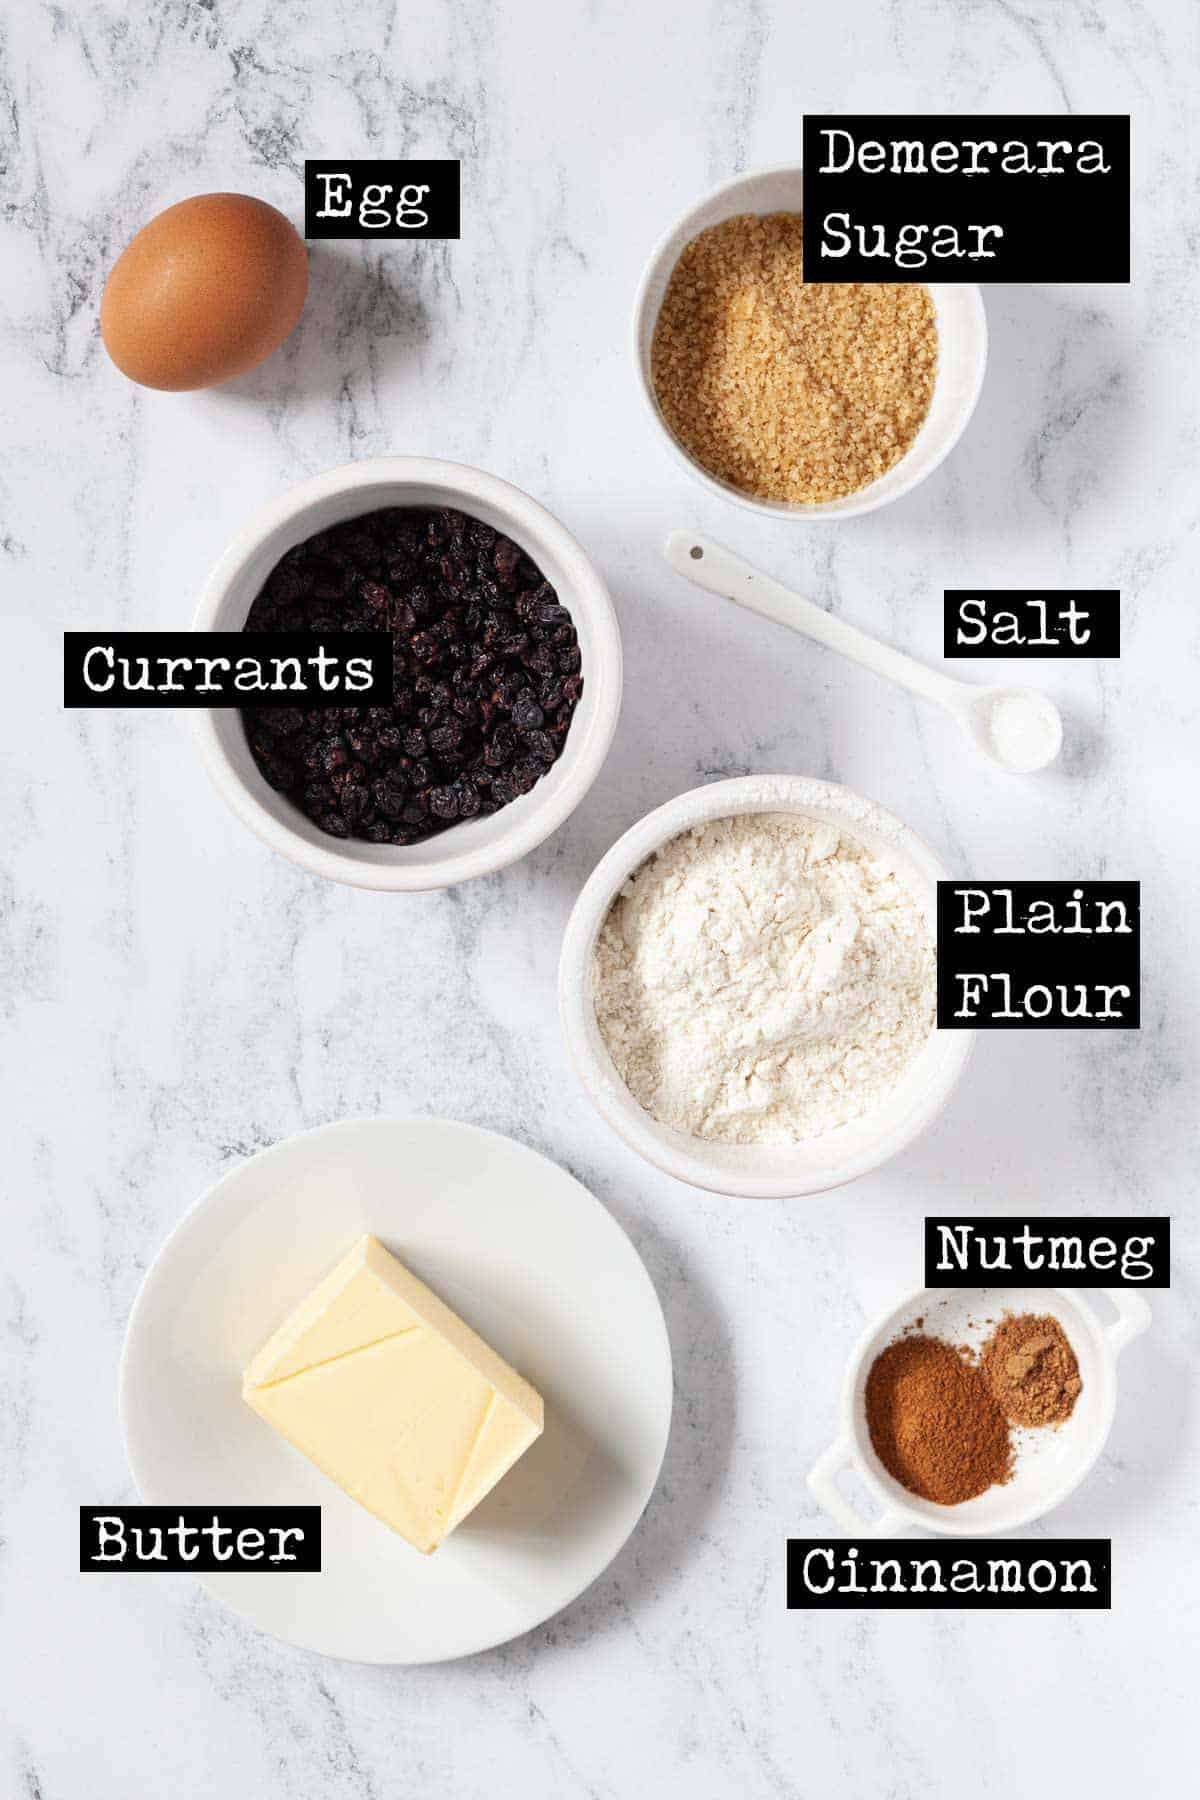 Ingredients for Eccles Cakes